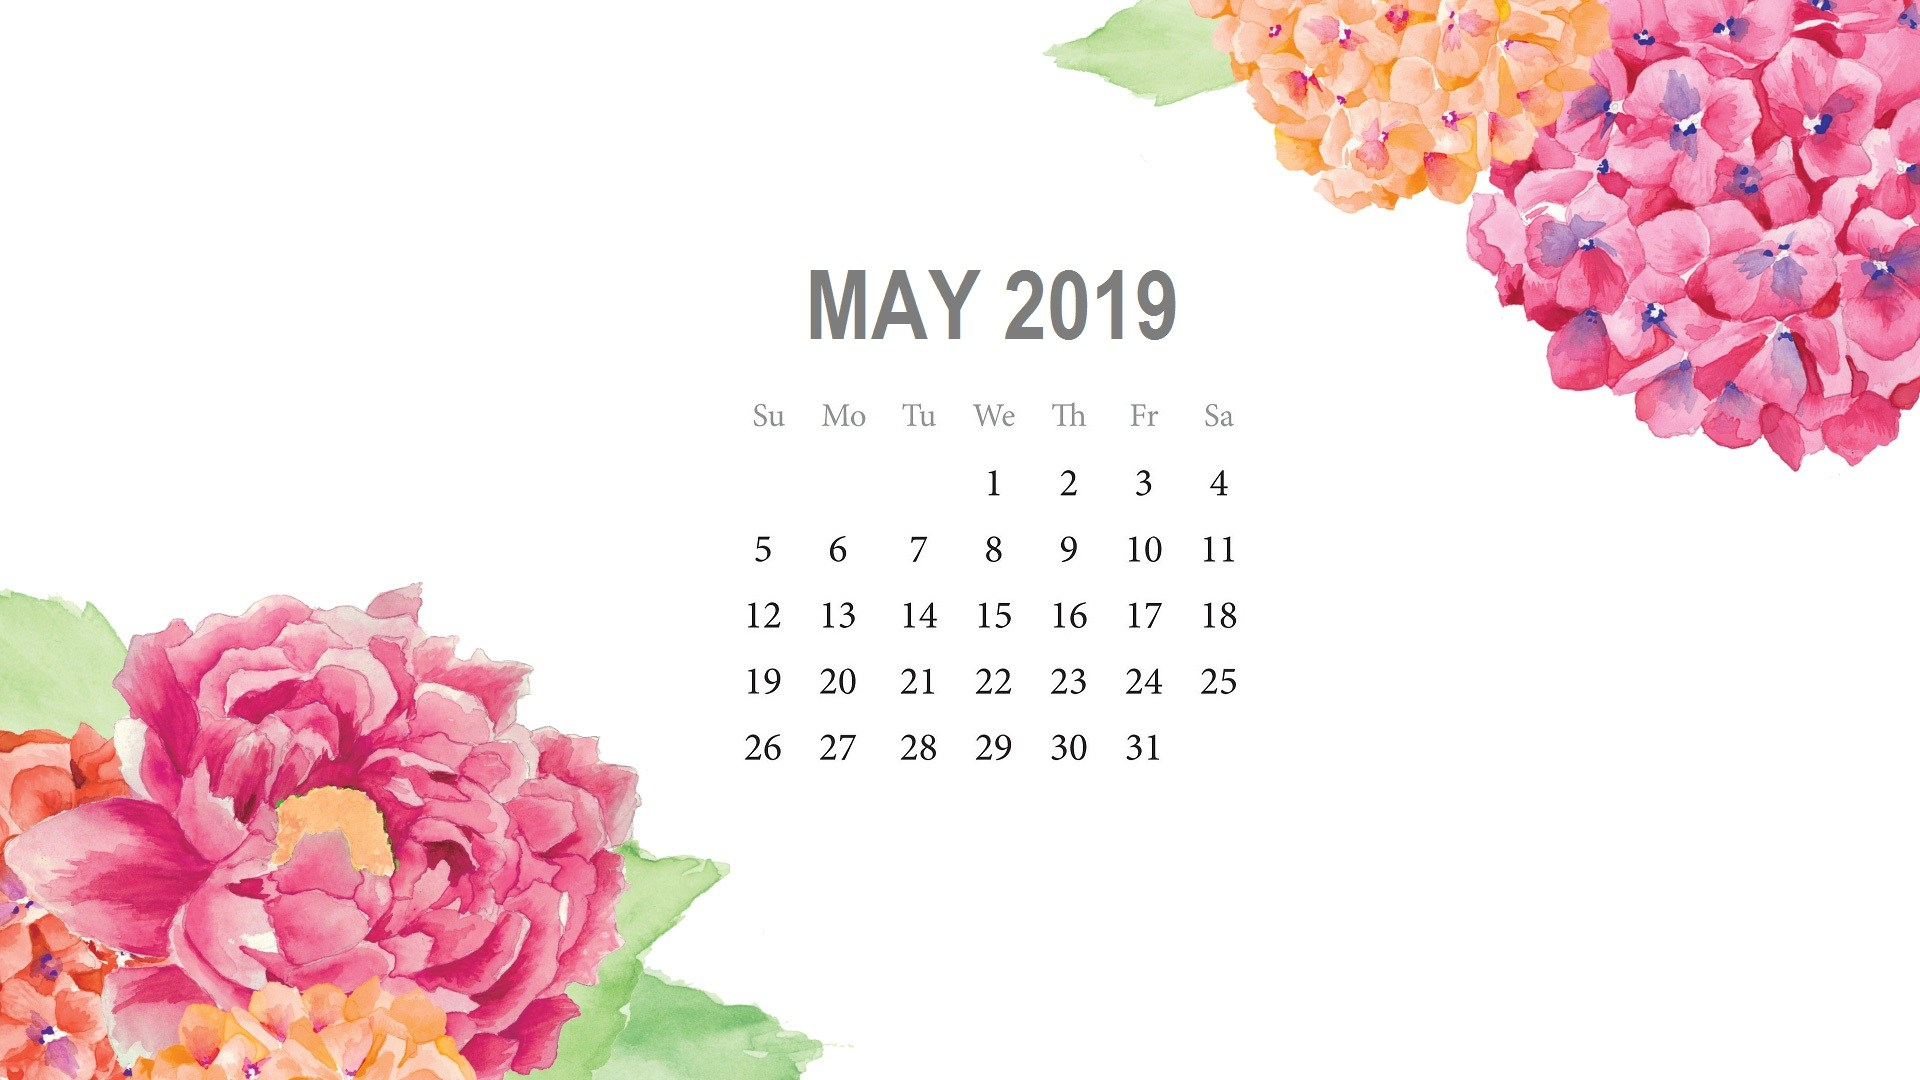 Floral May 2019 Calendar Wallpaper Cute Design